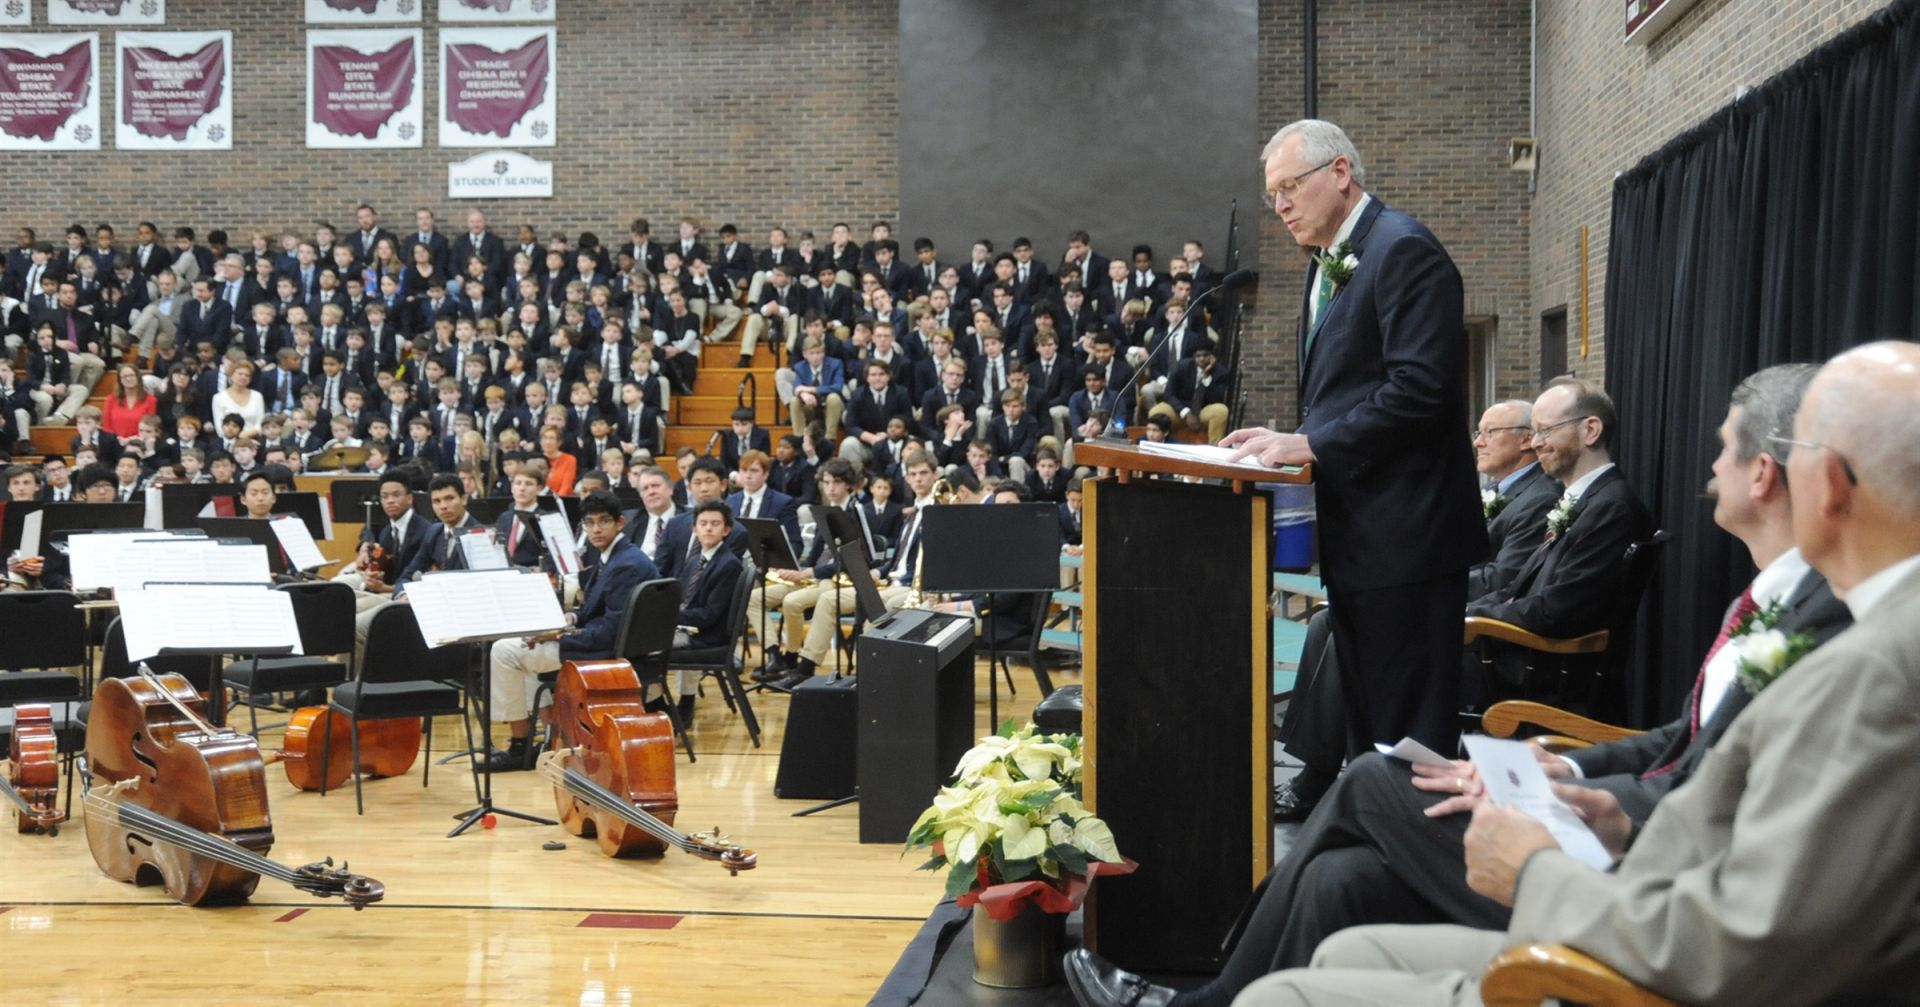 James Kubacki, president of St. Edward High School, gave the keynote address.